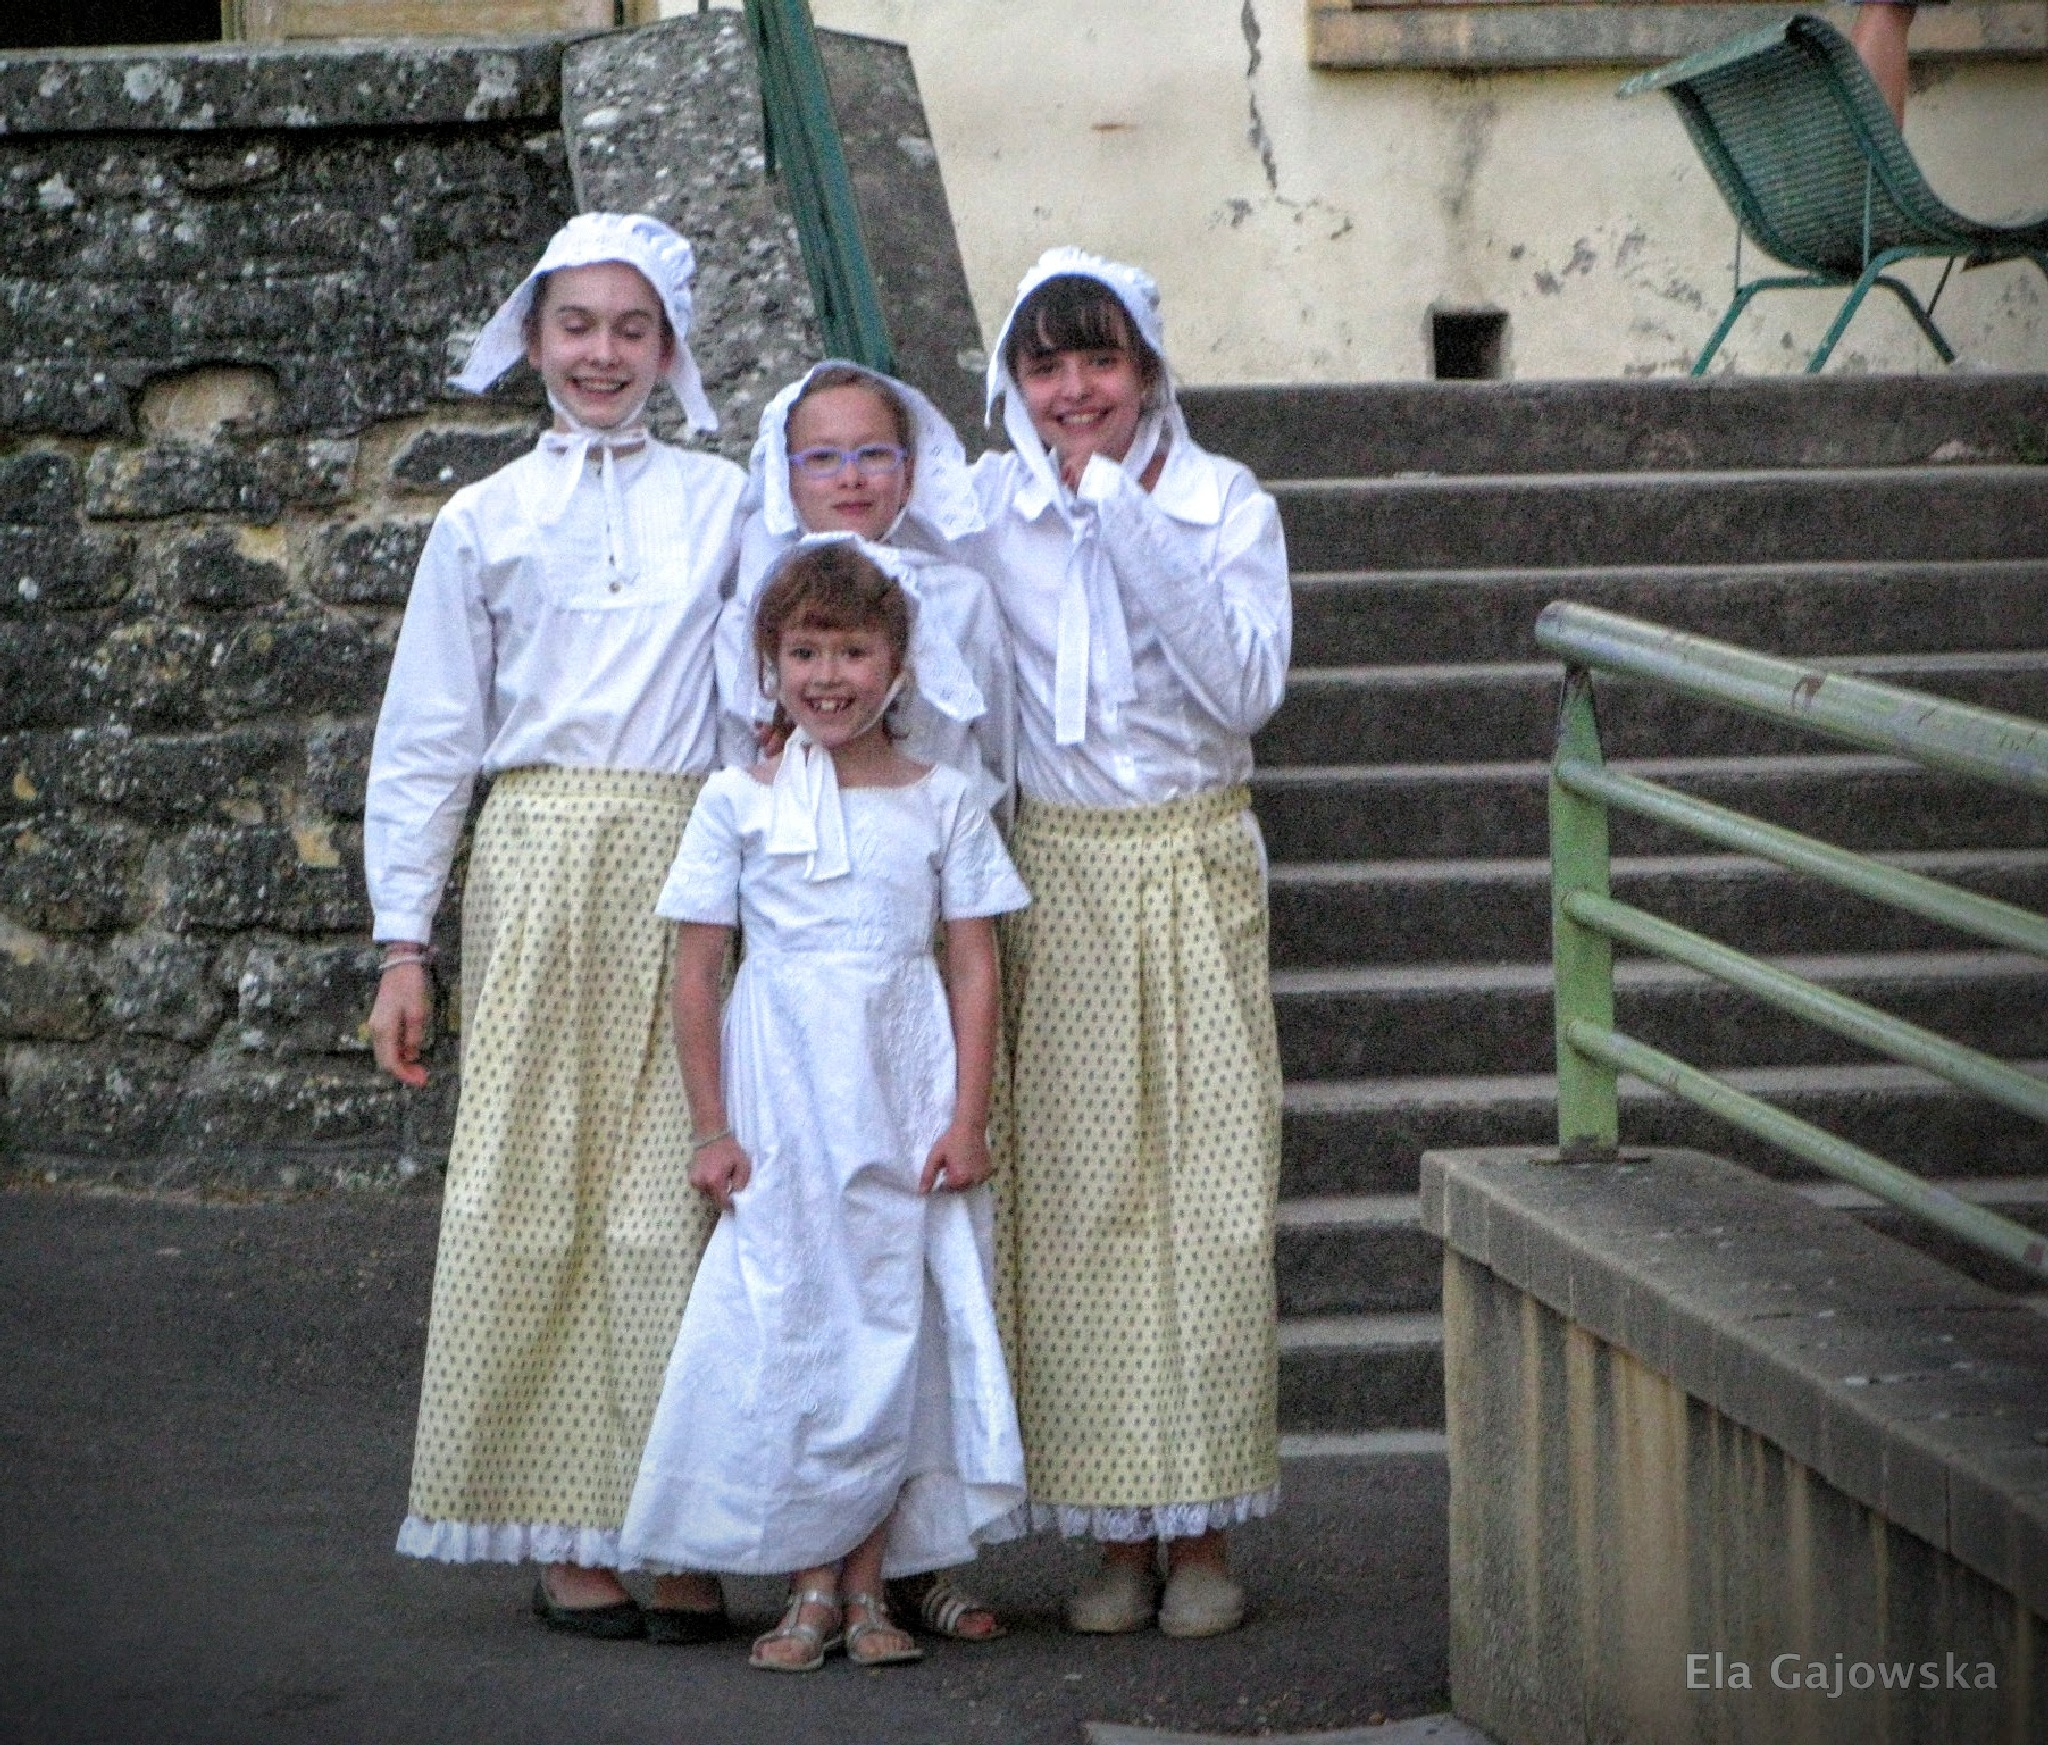 Girls dressed up during a local festival by Ela Gajowska